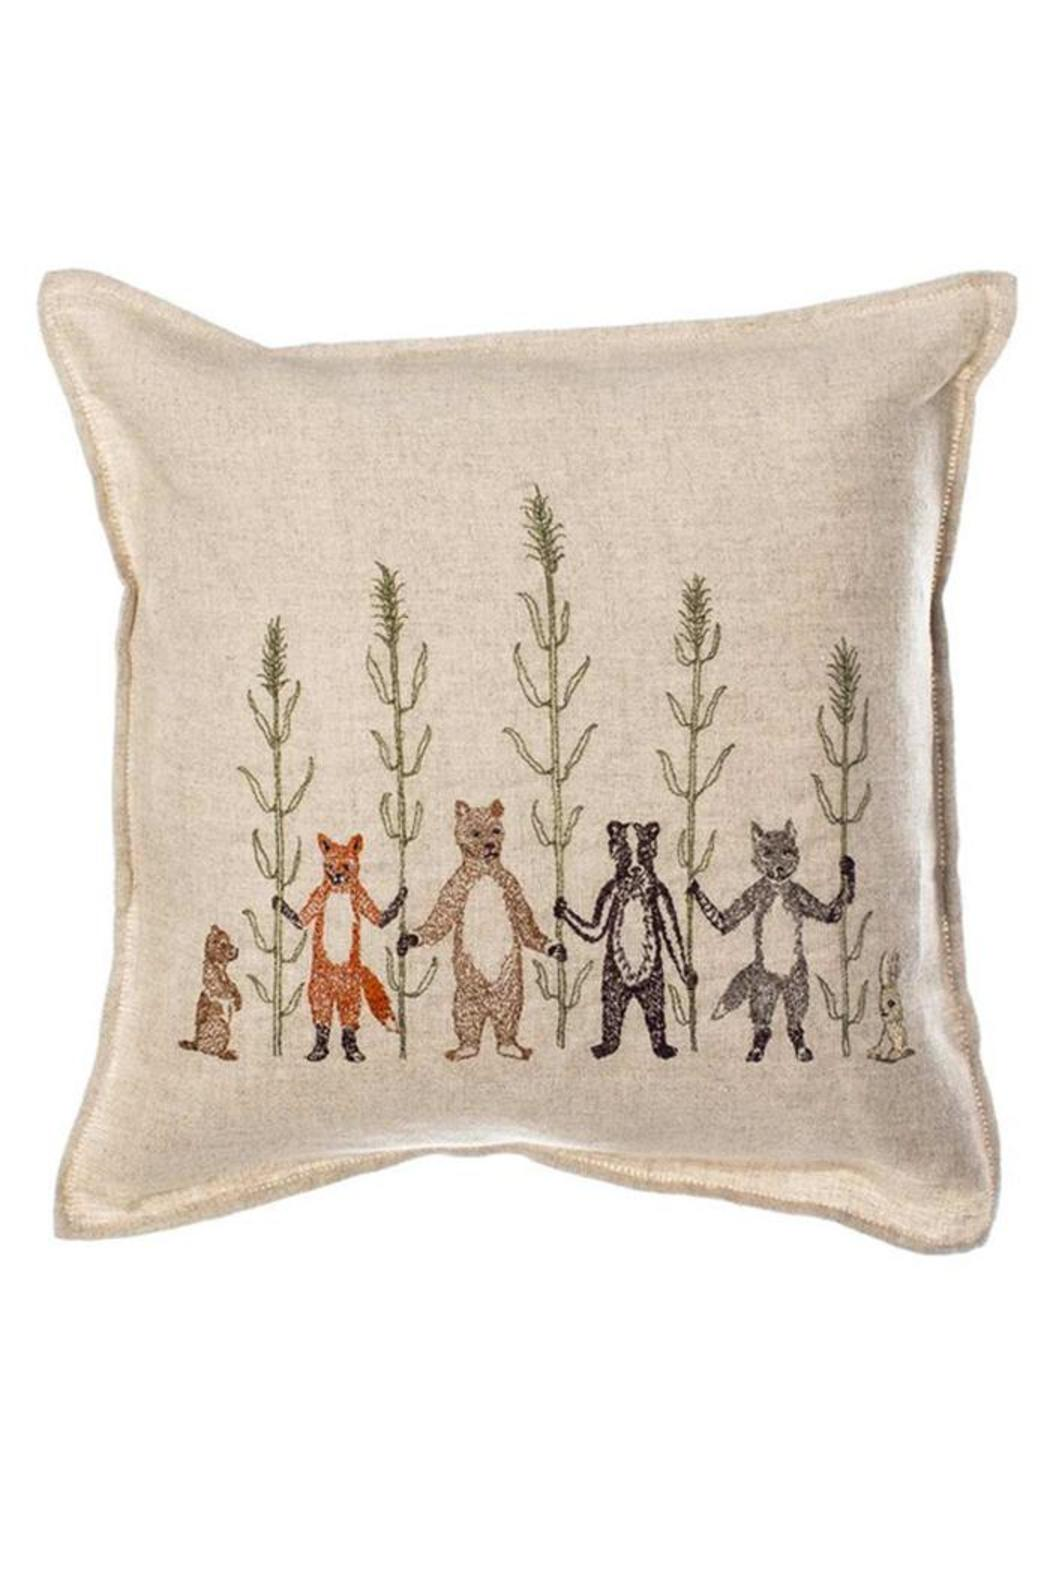 Coral & Tusk Embroidered Pillow Harvest - Main Image